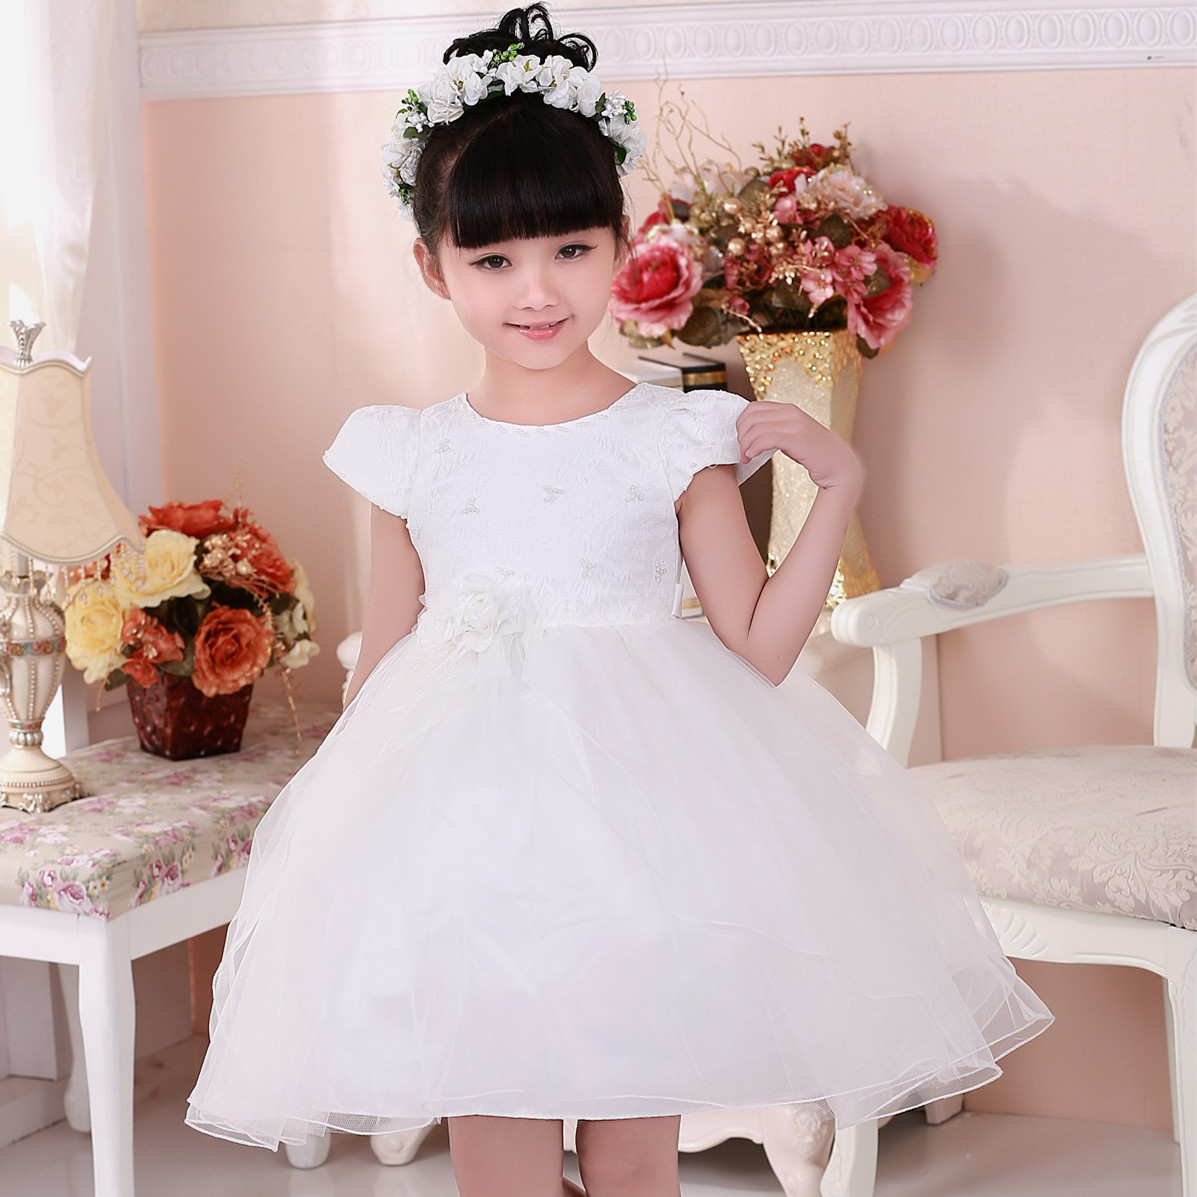 Are you looking for Flower Girl Dresses For 2 Year Olds Tbdress is a best place to buy Flower Girl Dresses. Here offers a fantastic collection of Flower Girl Dresses For 2 Year Olds, variety of styles, colors to suit you. All of items have the lowest price for you. So visit Tbdress now, you will have a .